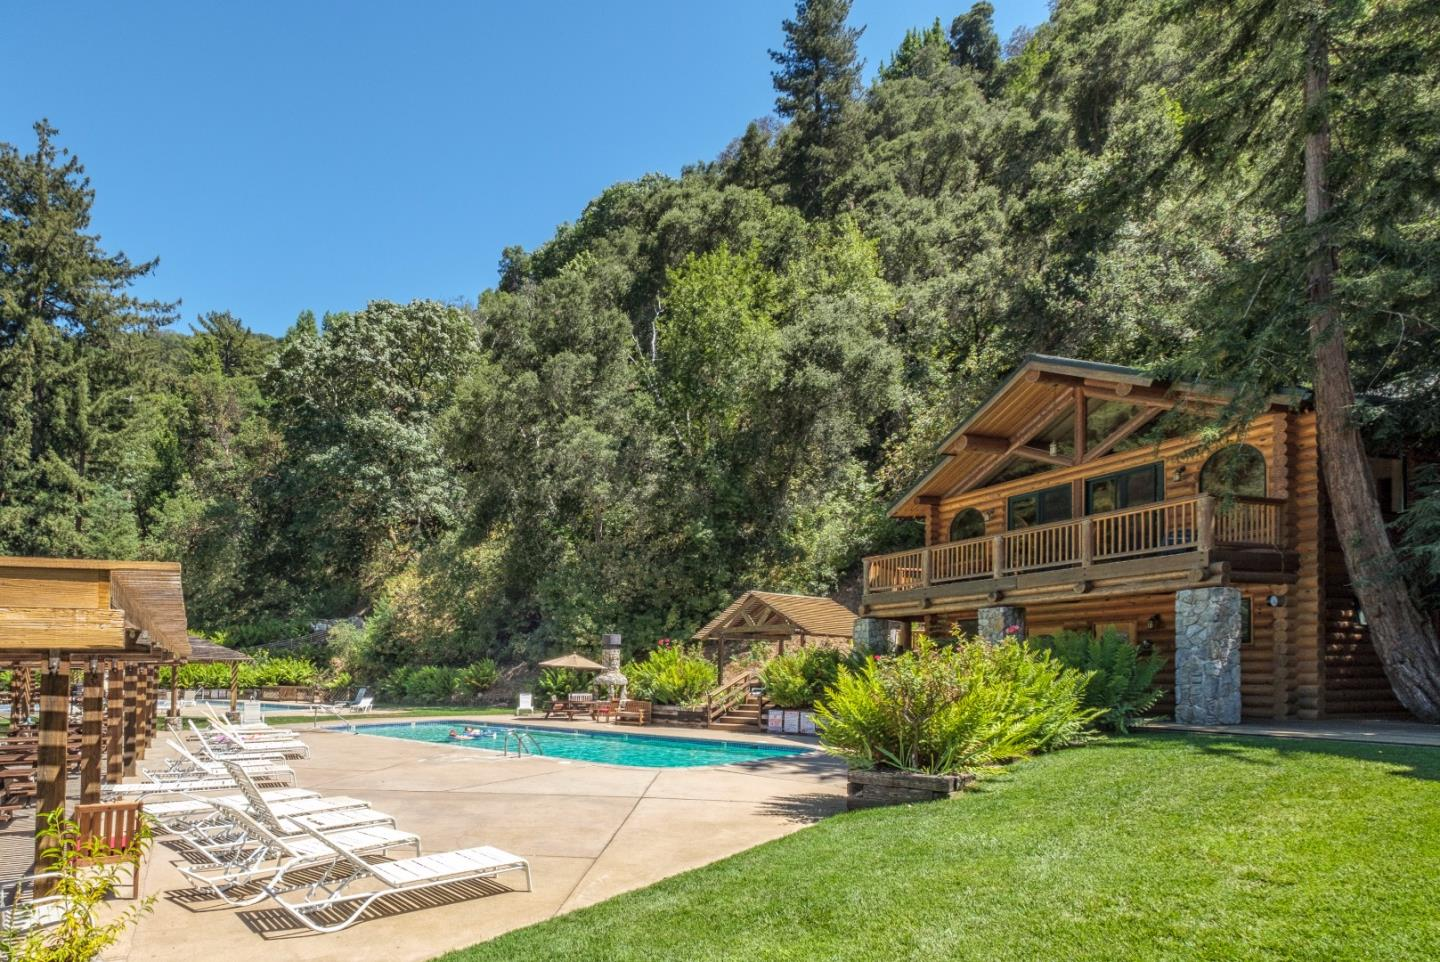 Additional photo for property listing at 36865 Dormody Road  Carmel, カリフォルニア 93923 アメリカ合衆国